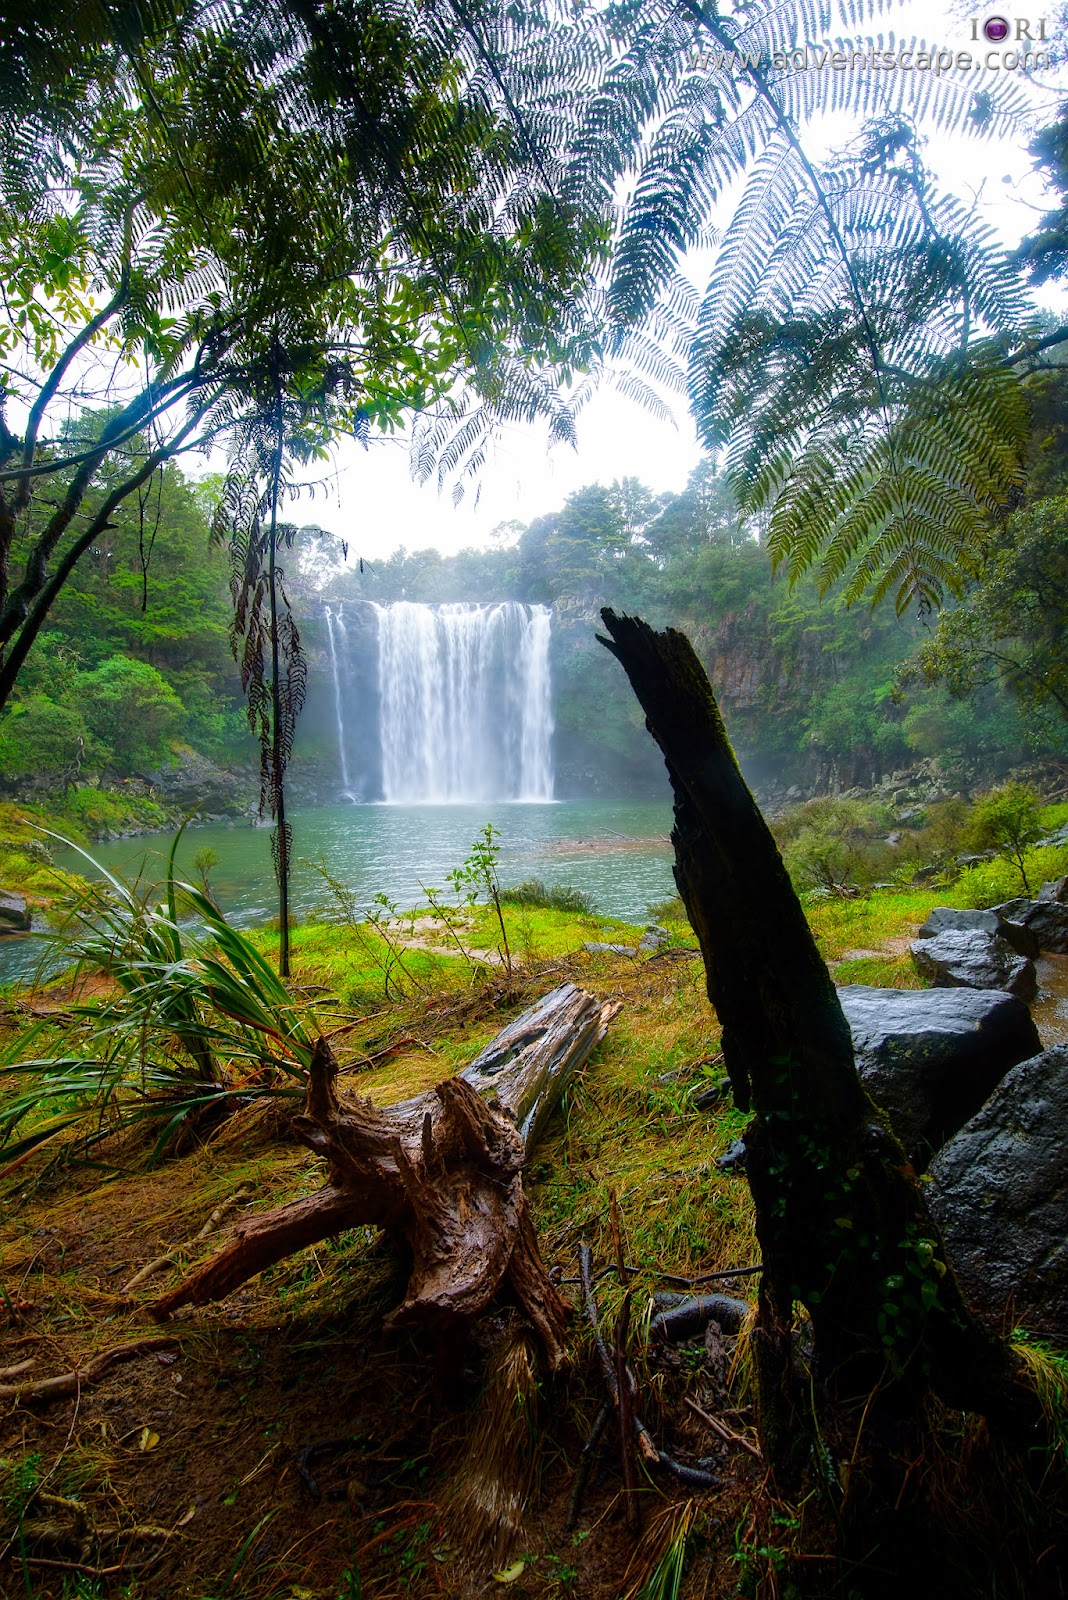 Philip Avellana, iori, Australian Landscape Photographer, adventscape, New Zealand, falls, waterfalls, nature photos, Kerikeri, North Island, tour, travel, pool bed, trunch, Rainbow Falls